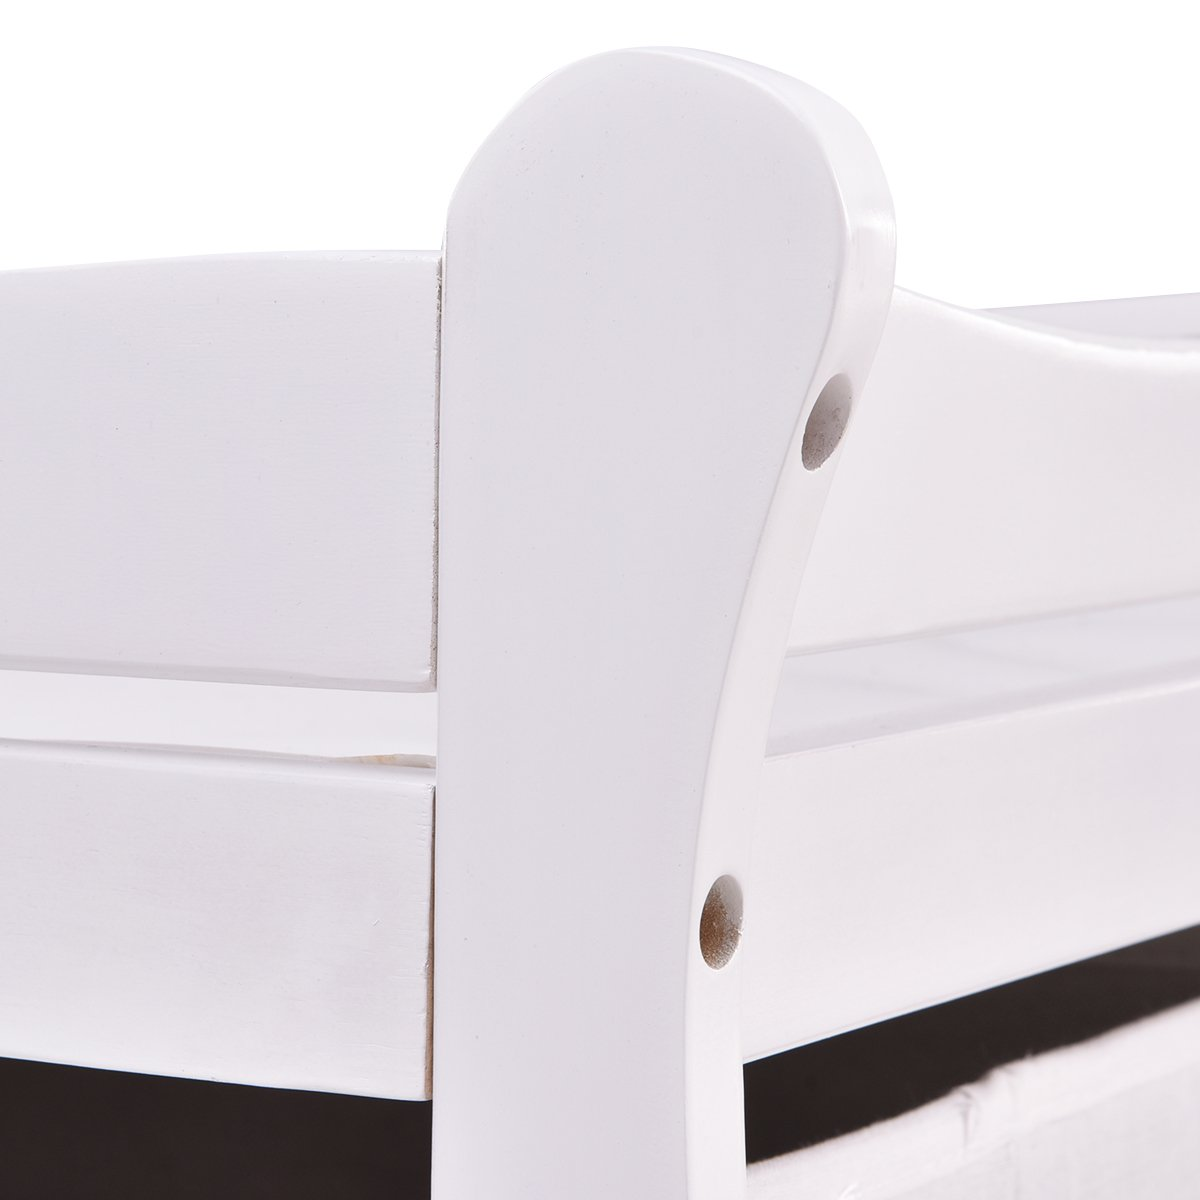 Costzon Baby Changing Table Infant Diaper Nursery Station w/6 Basket Storage Drawers (White) by Costzon (Image #4)